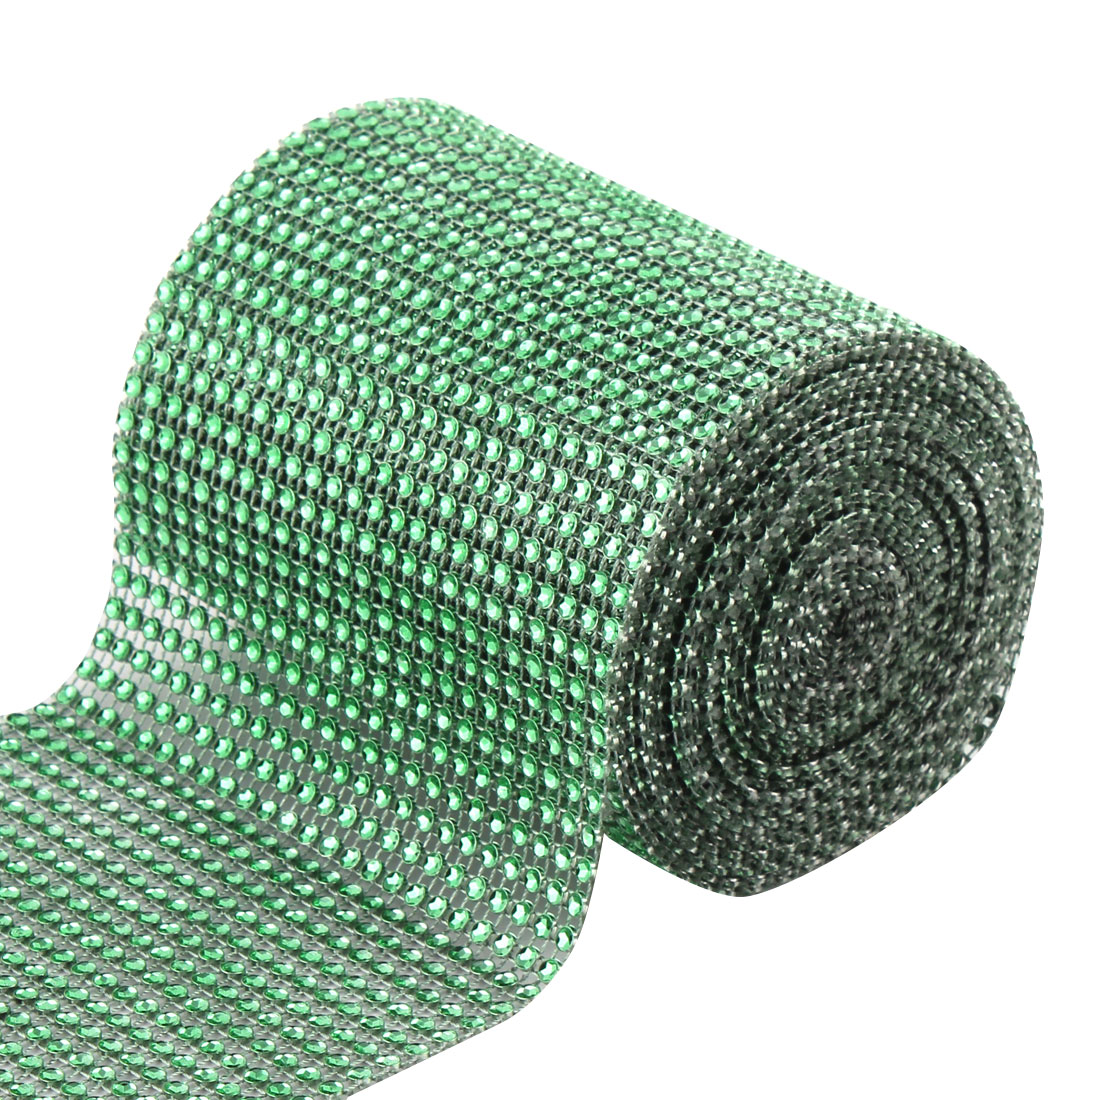 Household Plastic Cake Glass Table Decor Rhinestone Mesh Diamond Ribbon Green 5 Yard